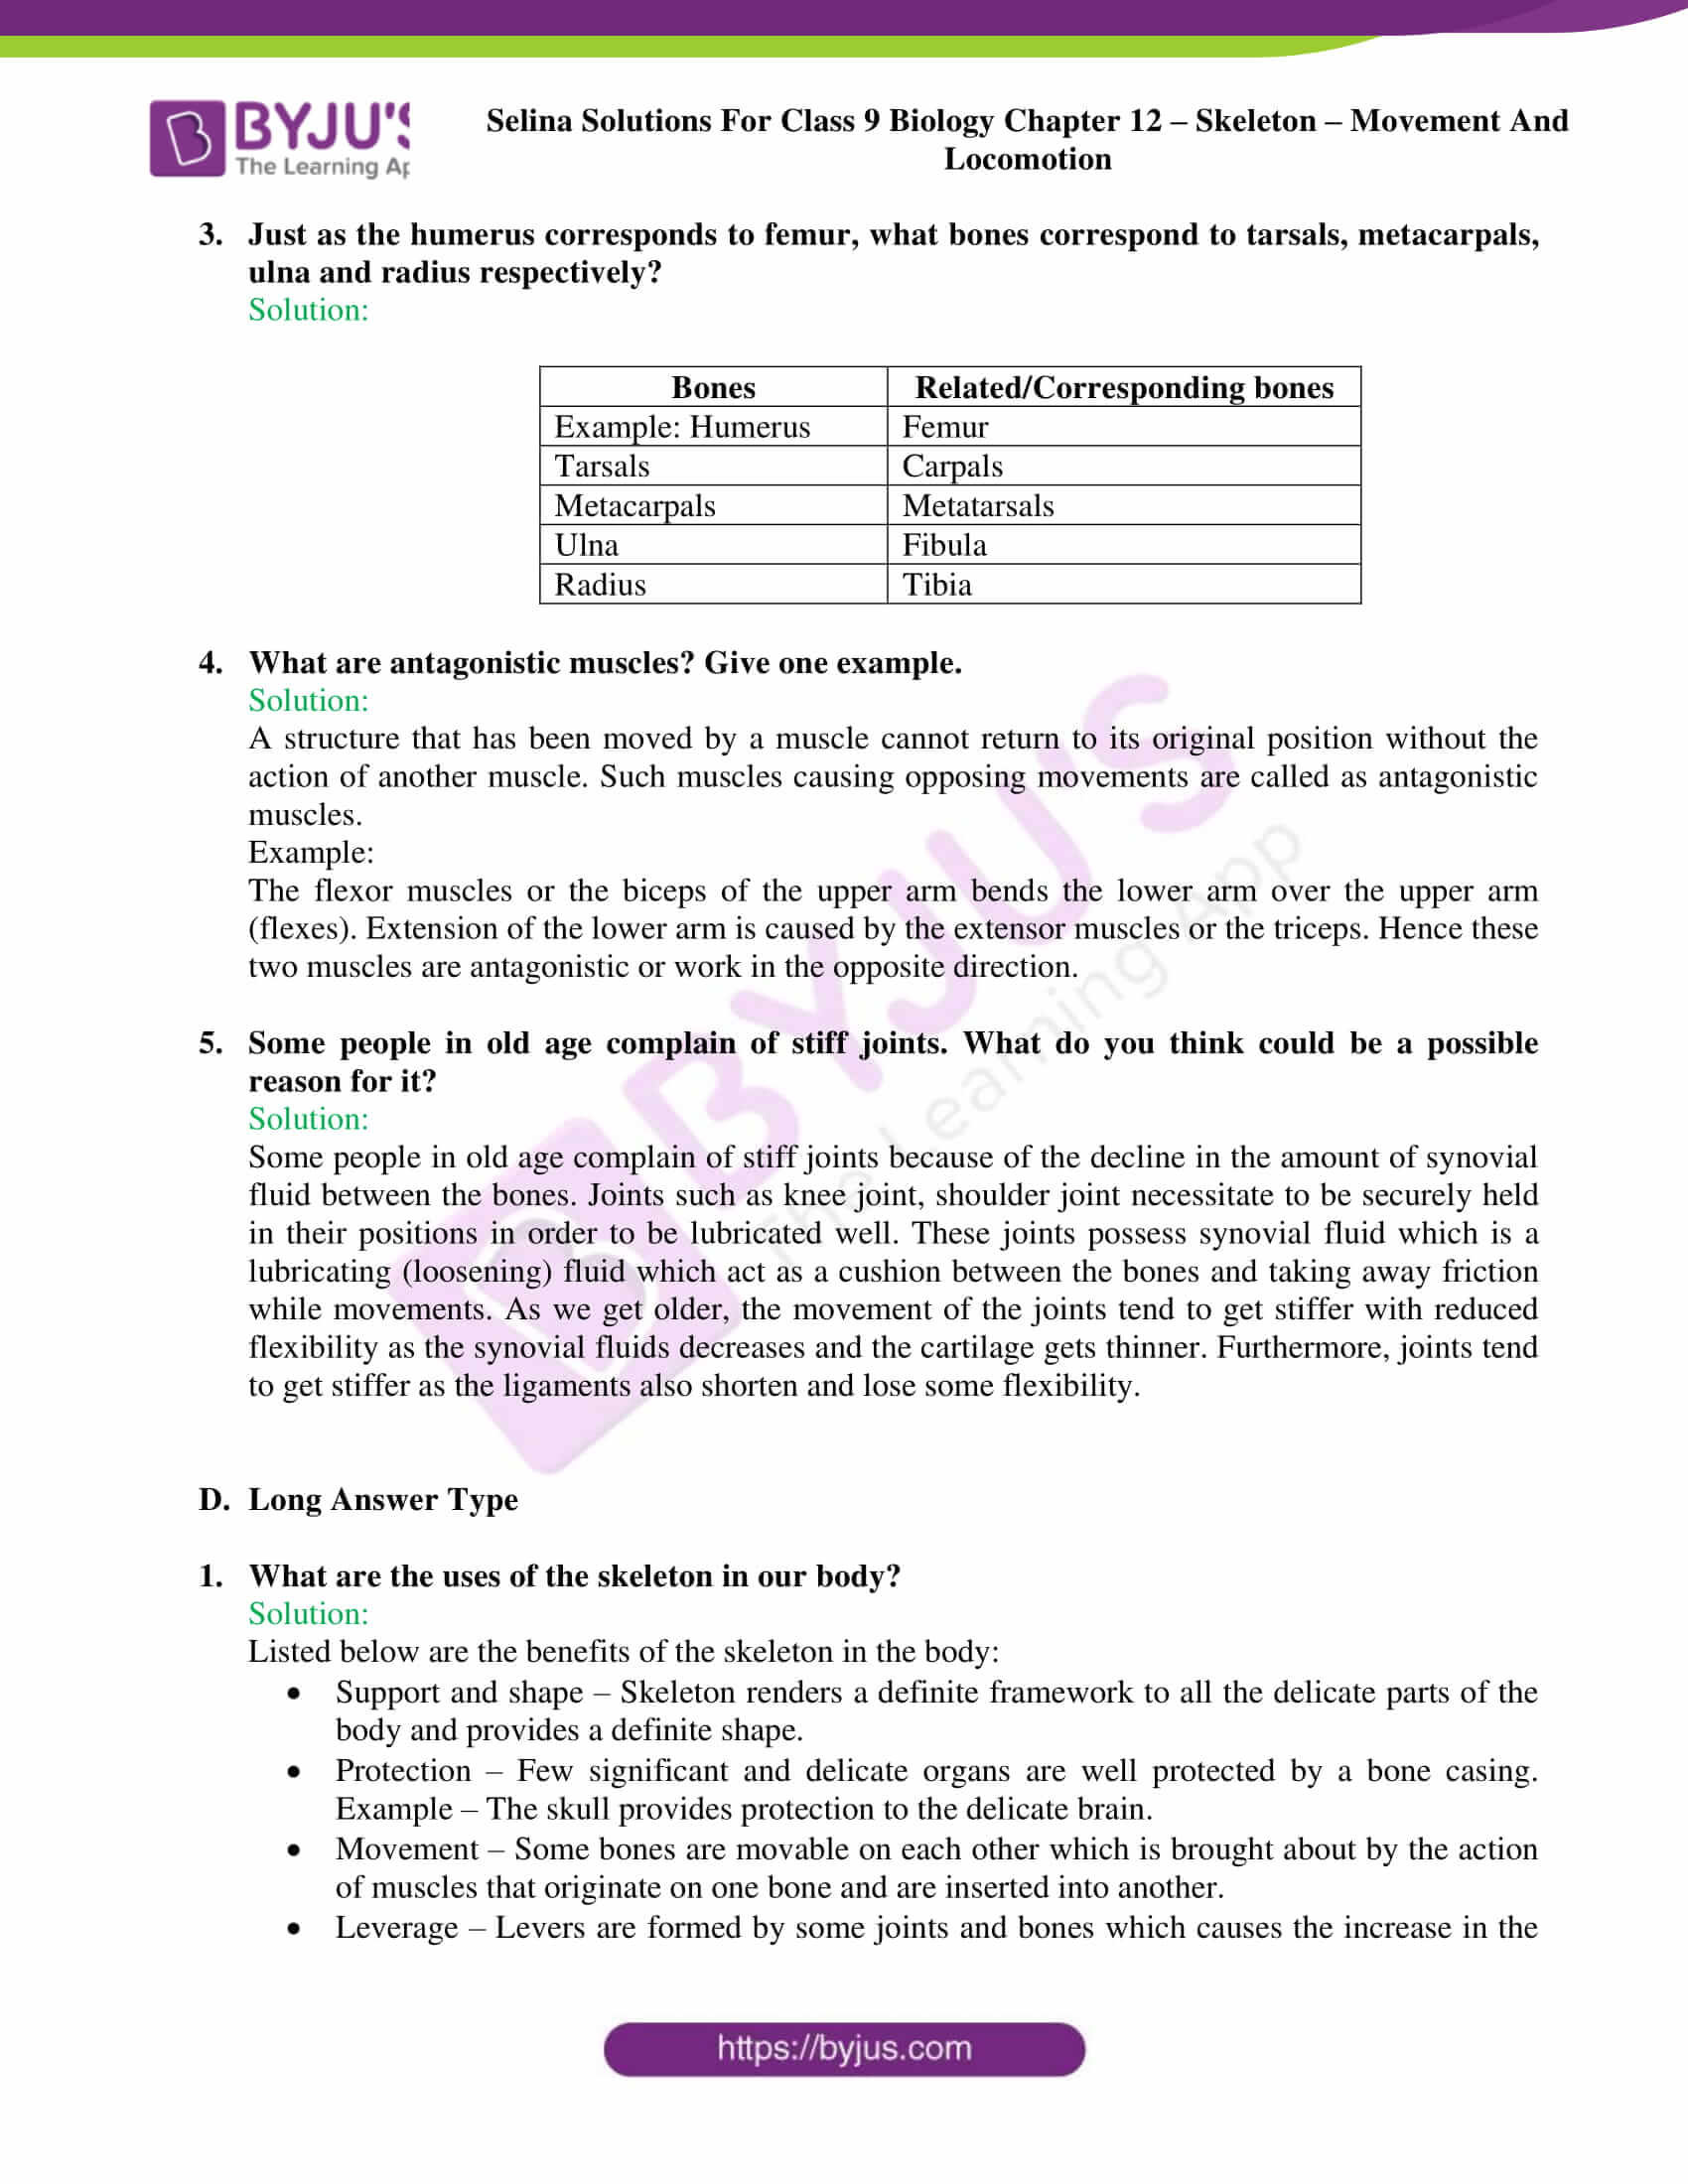 selina Solutions For Class 9 Biology Chapter 12 part 6